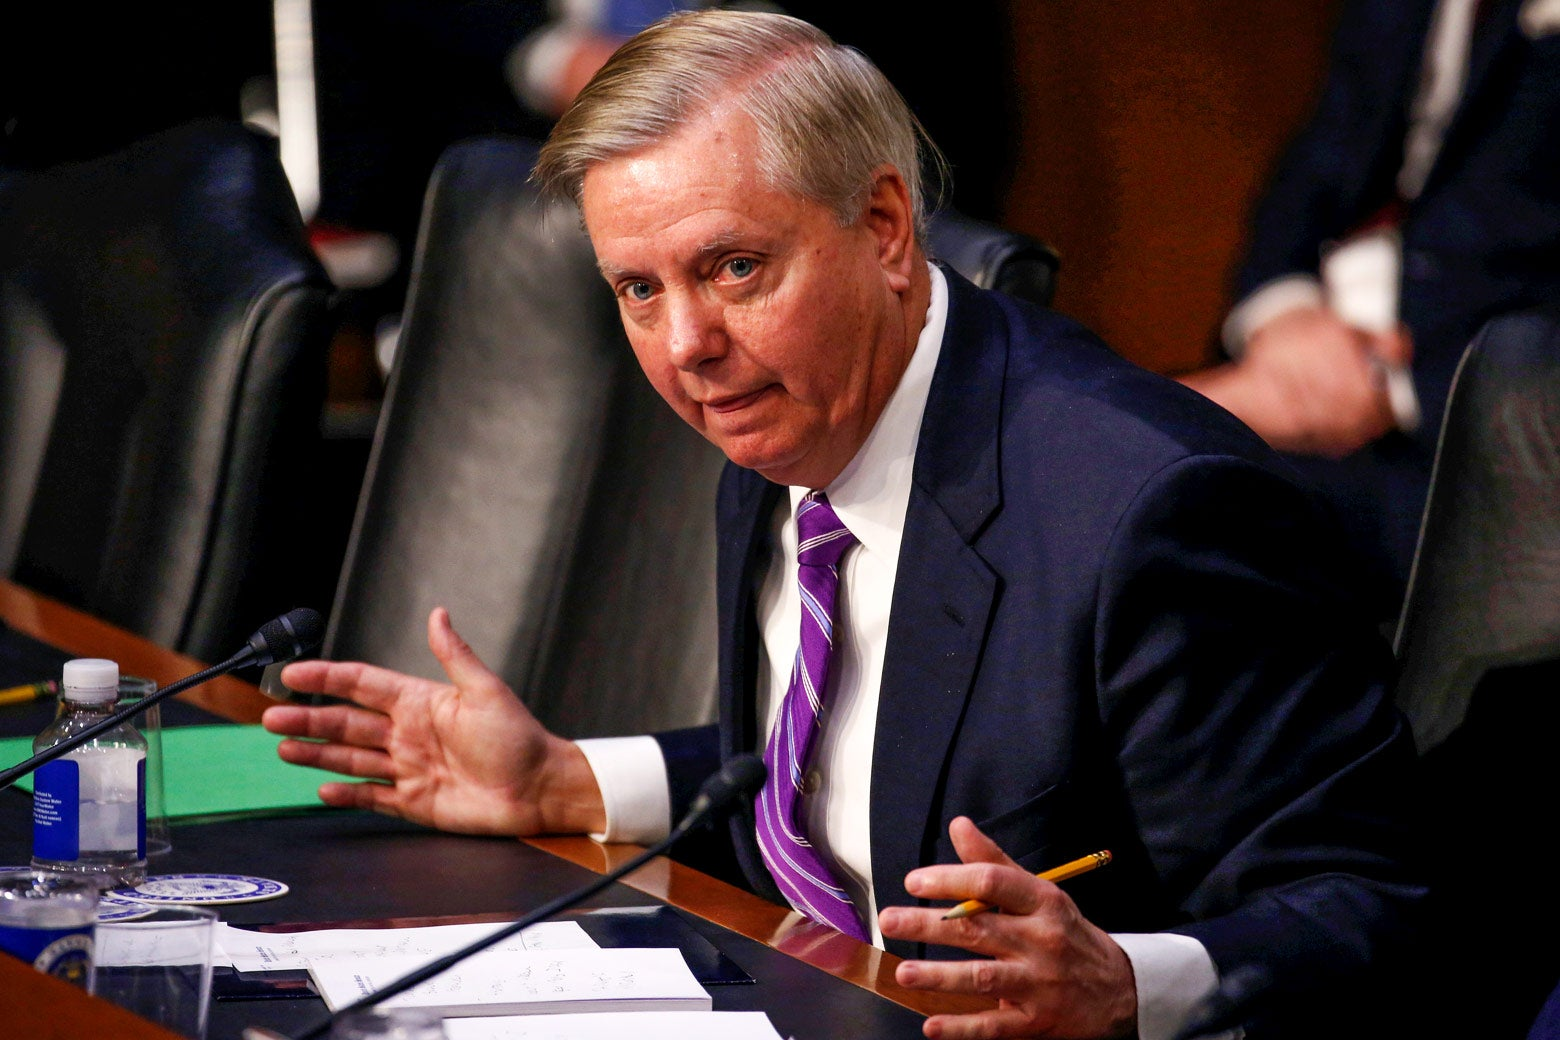 Lindsey Graham at a Capitol Hill hearing.